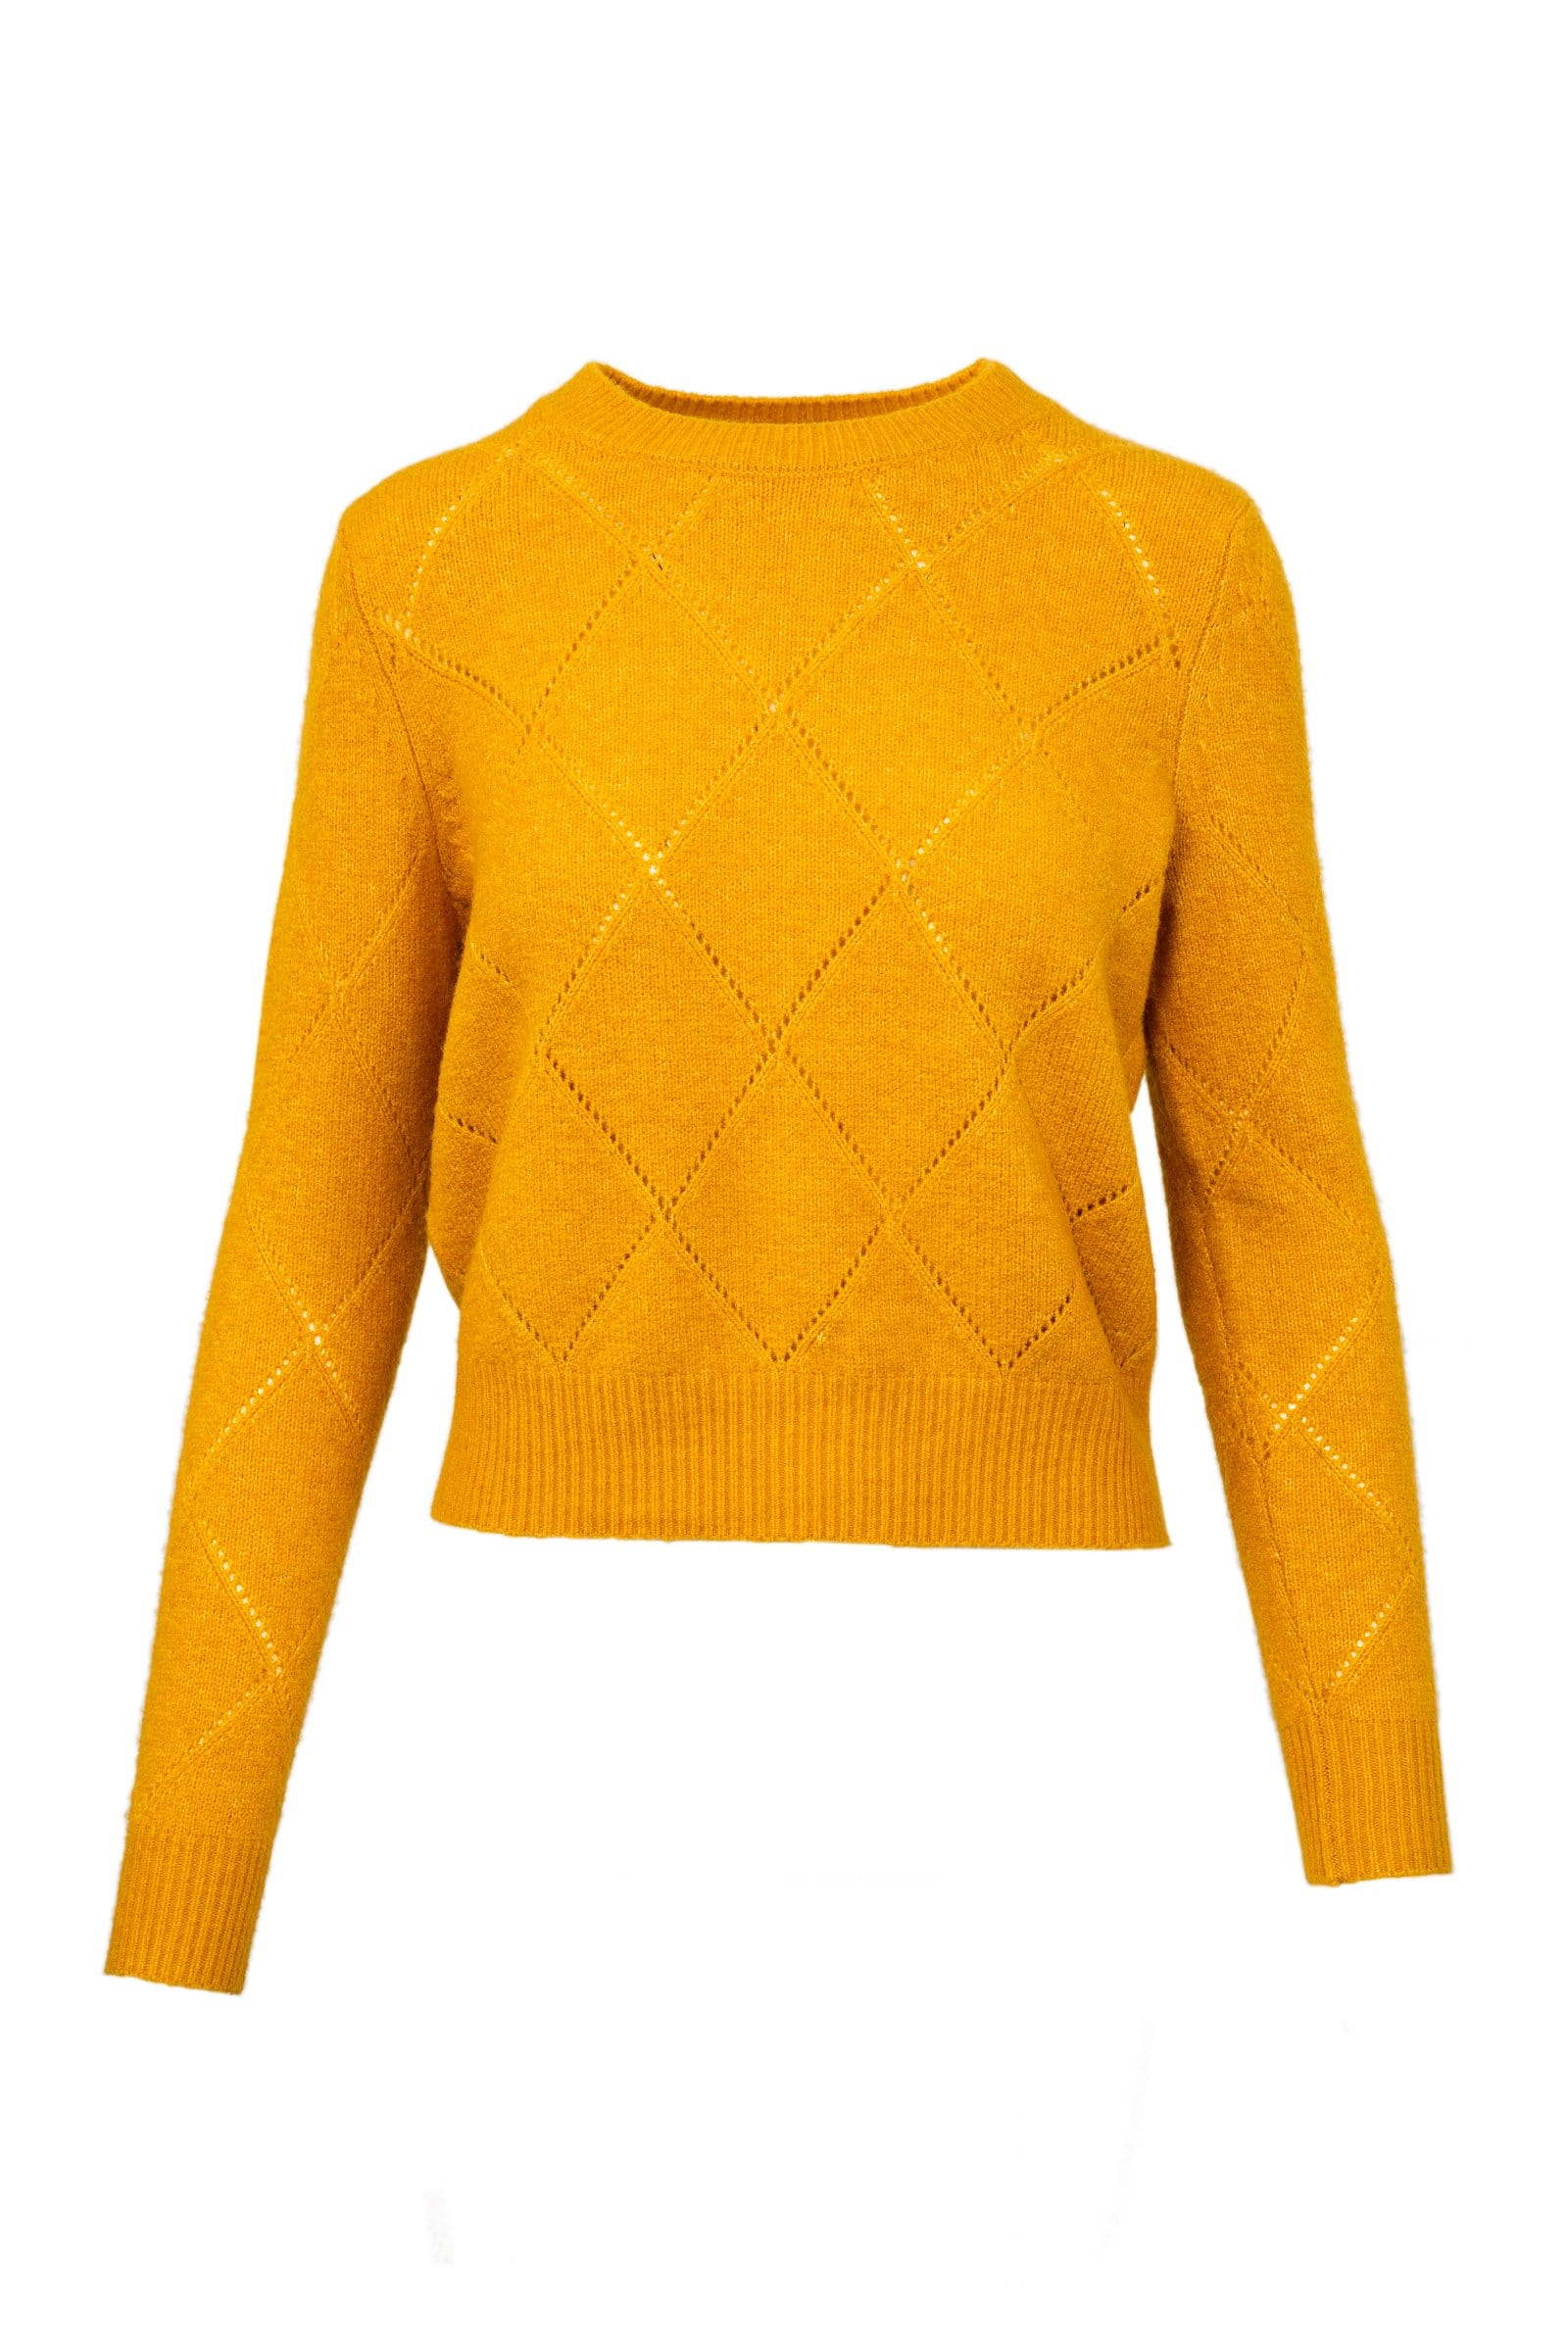 Husk Mustard Yellow Knitted Sweater